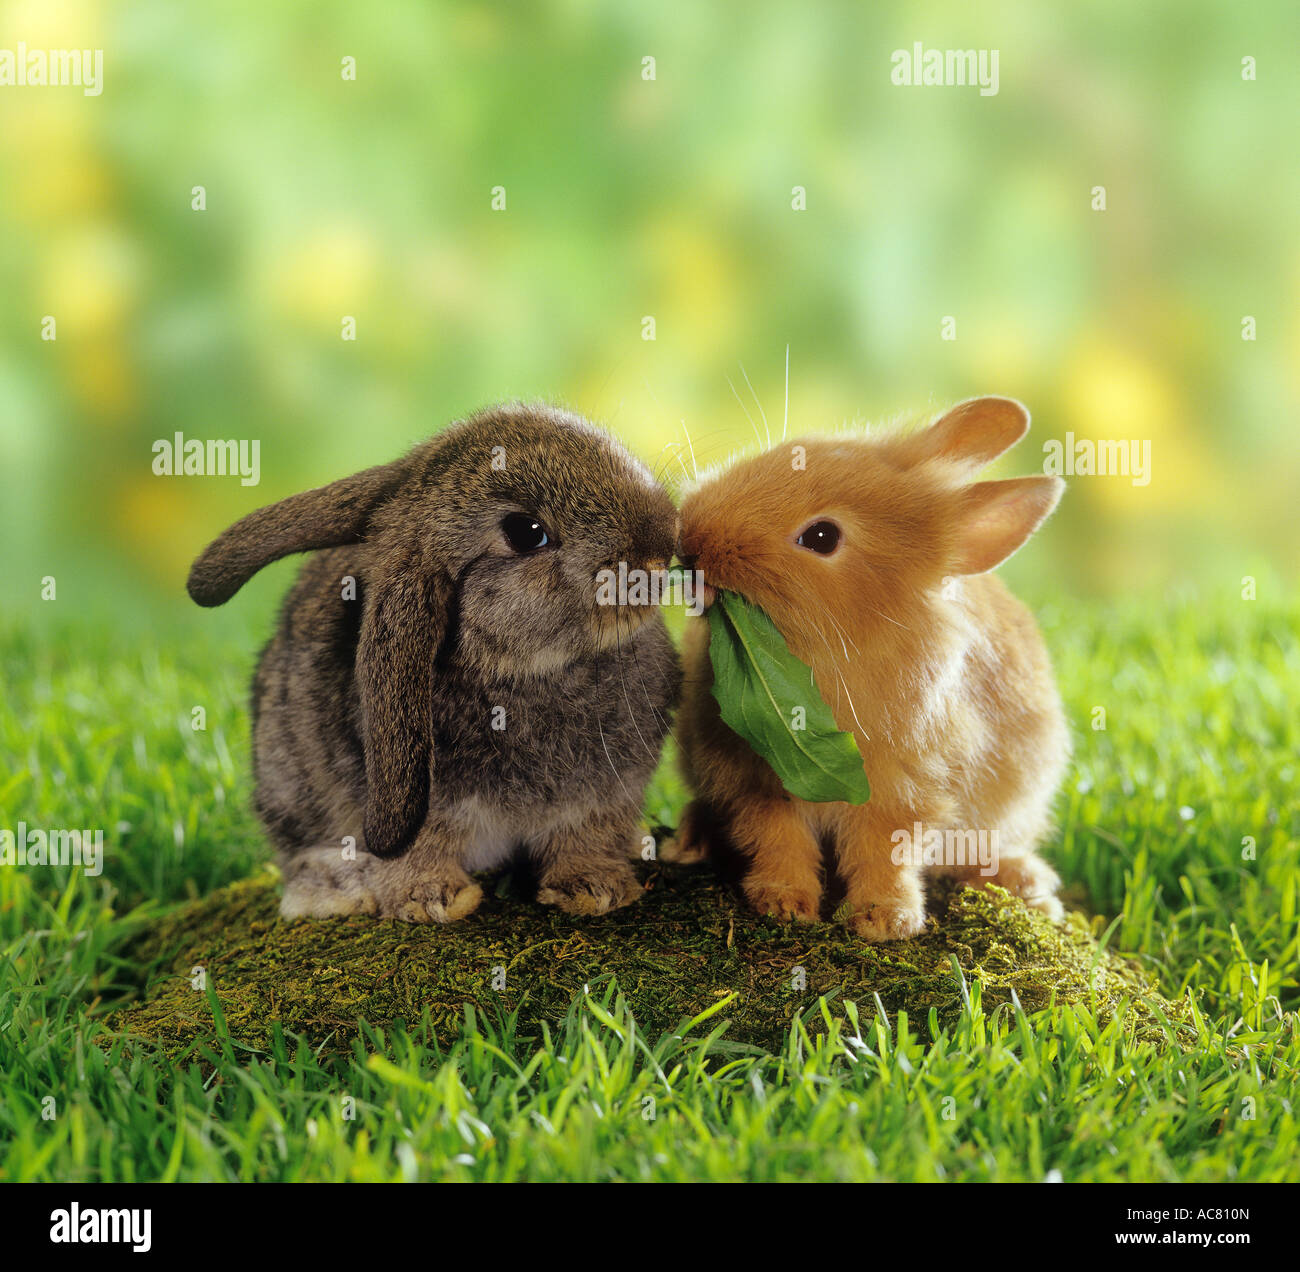 Cute Baby Pets Live Wallpaper Download Dwarf Rabbit And Lop Eared Dwarf Rabbits Eating A Leaf